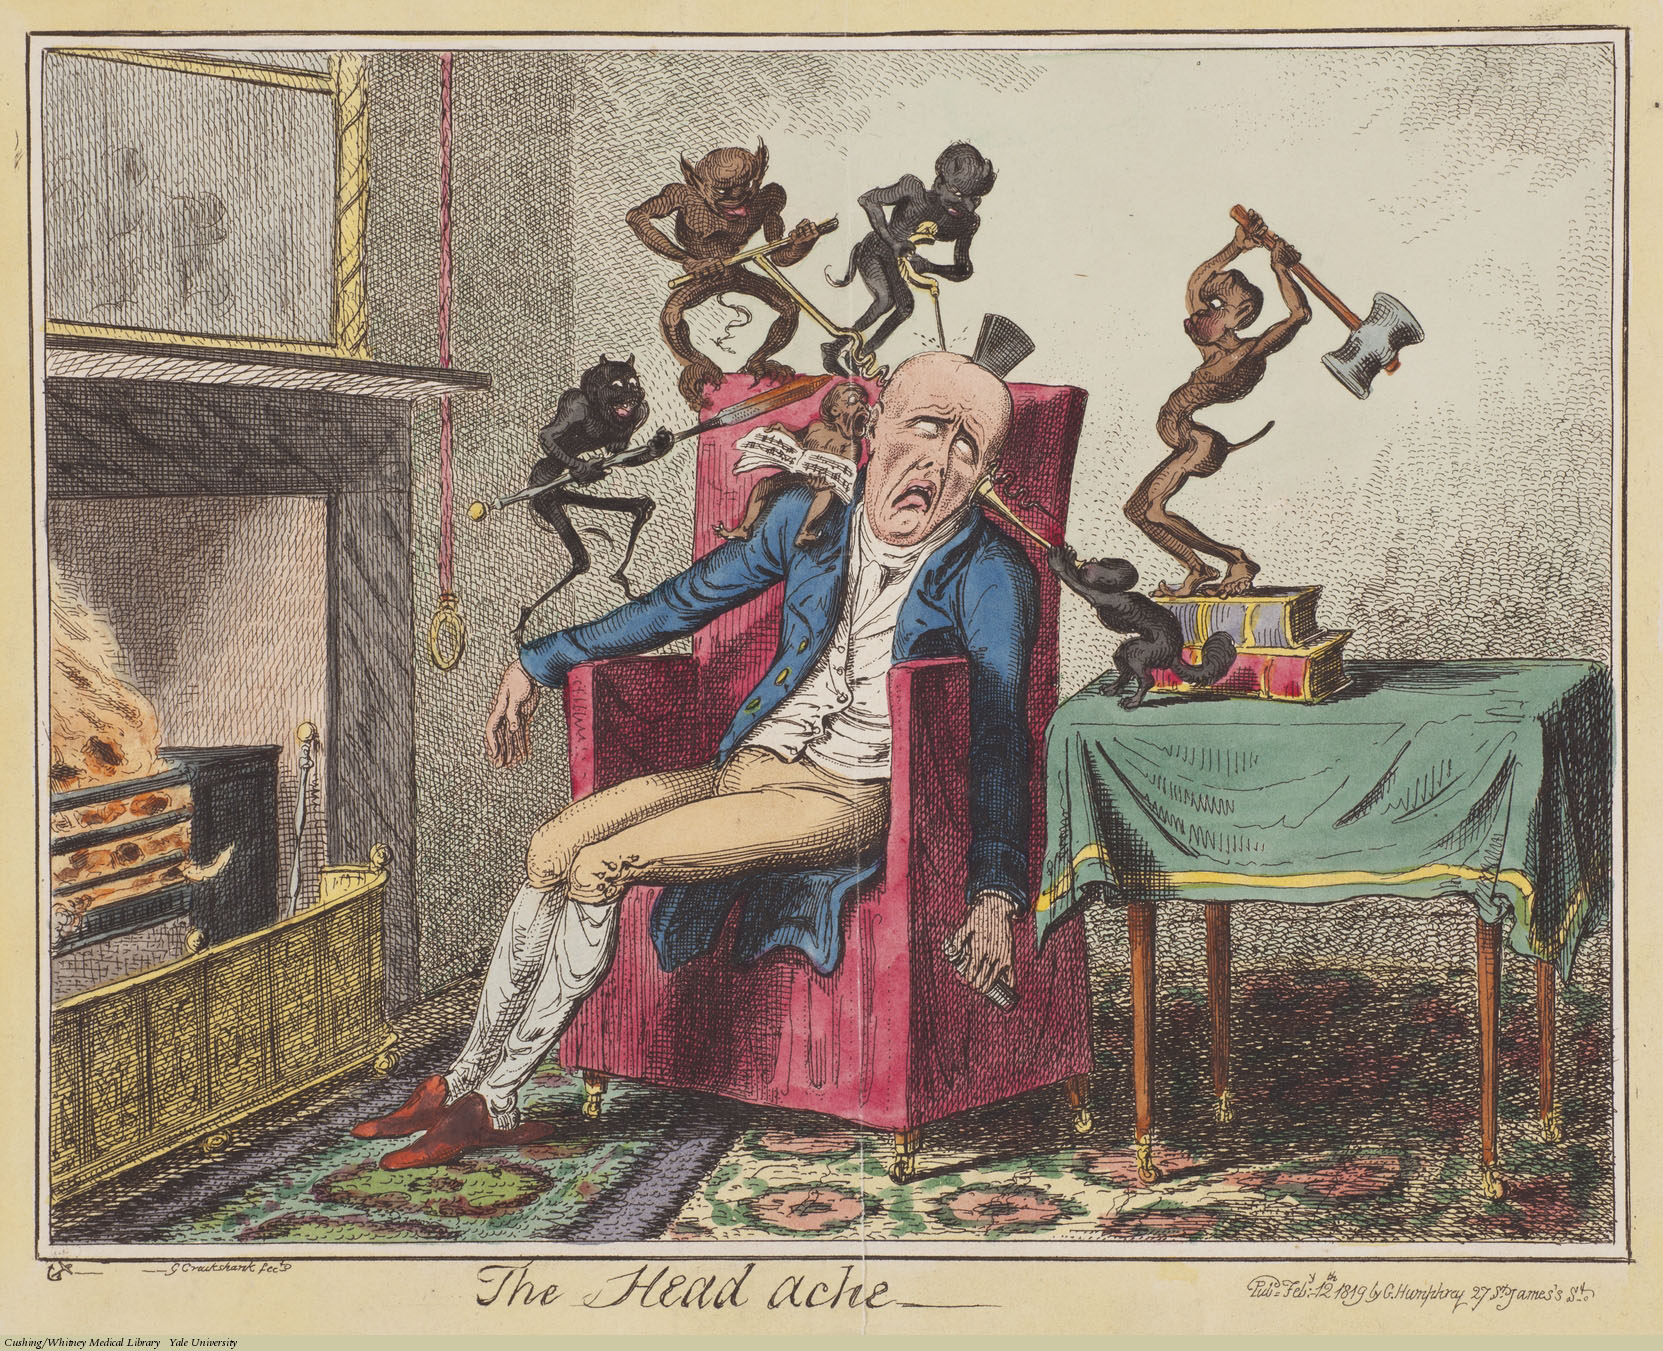 The Headache, George Cruikshank. Etching coloured. Subject: Headache, Devils & Demons.